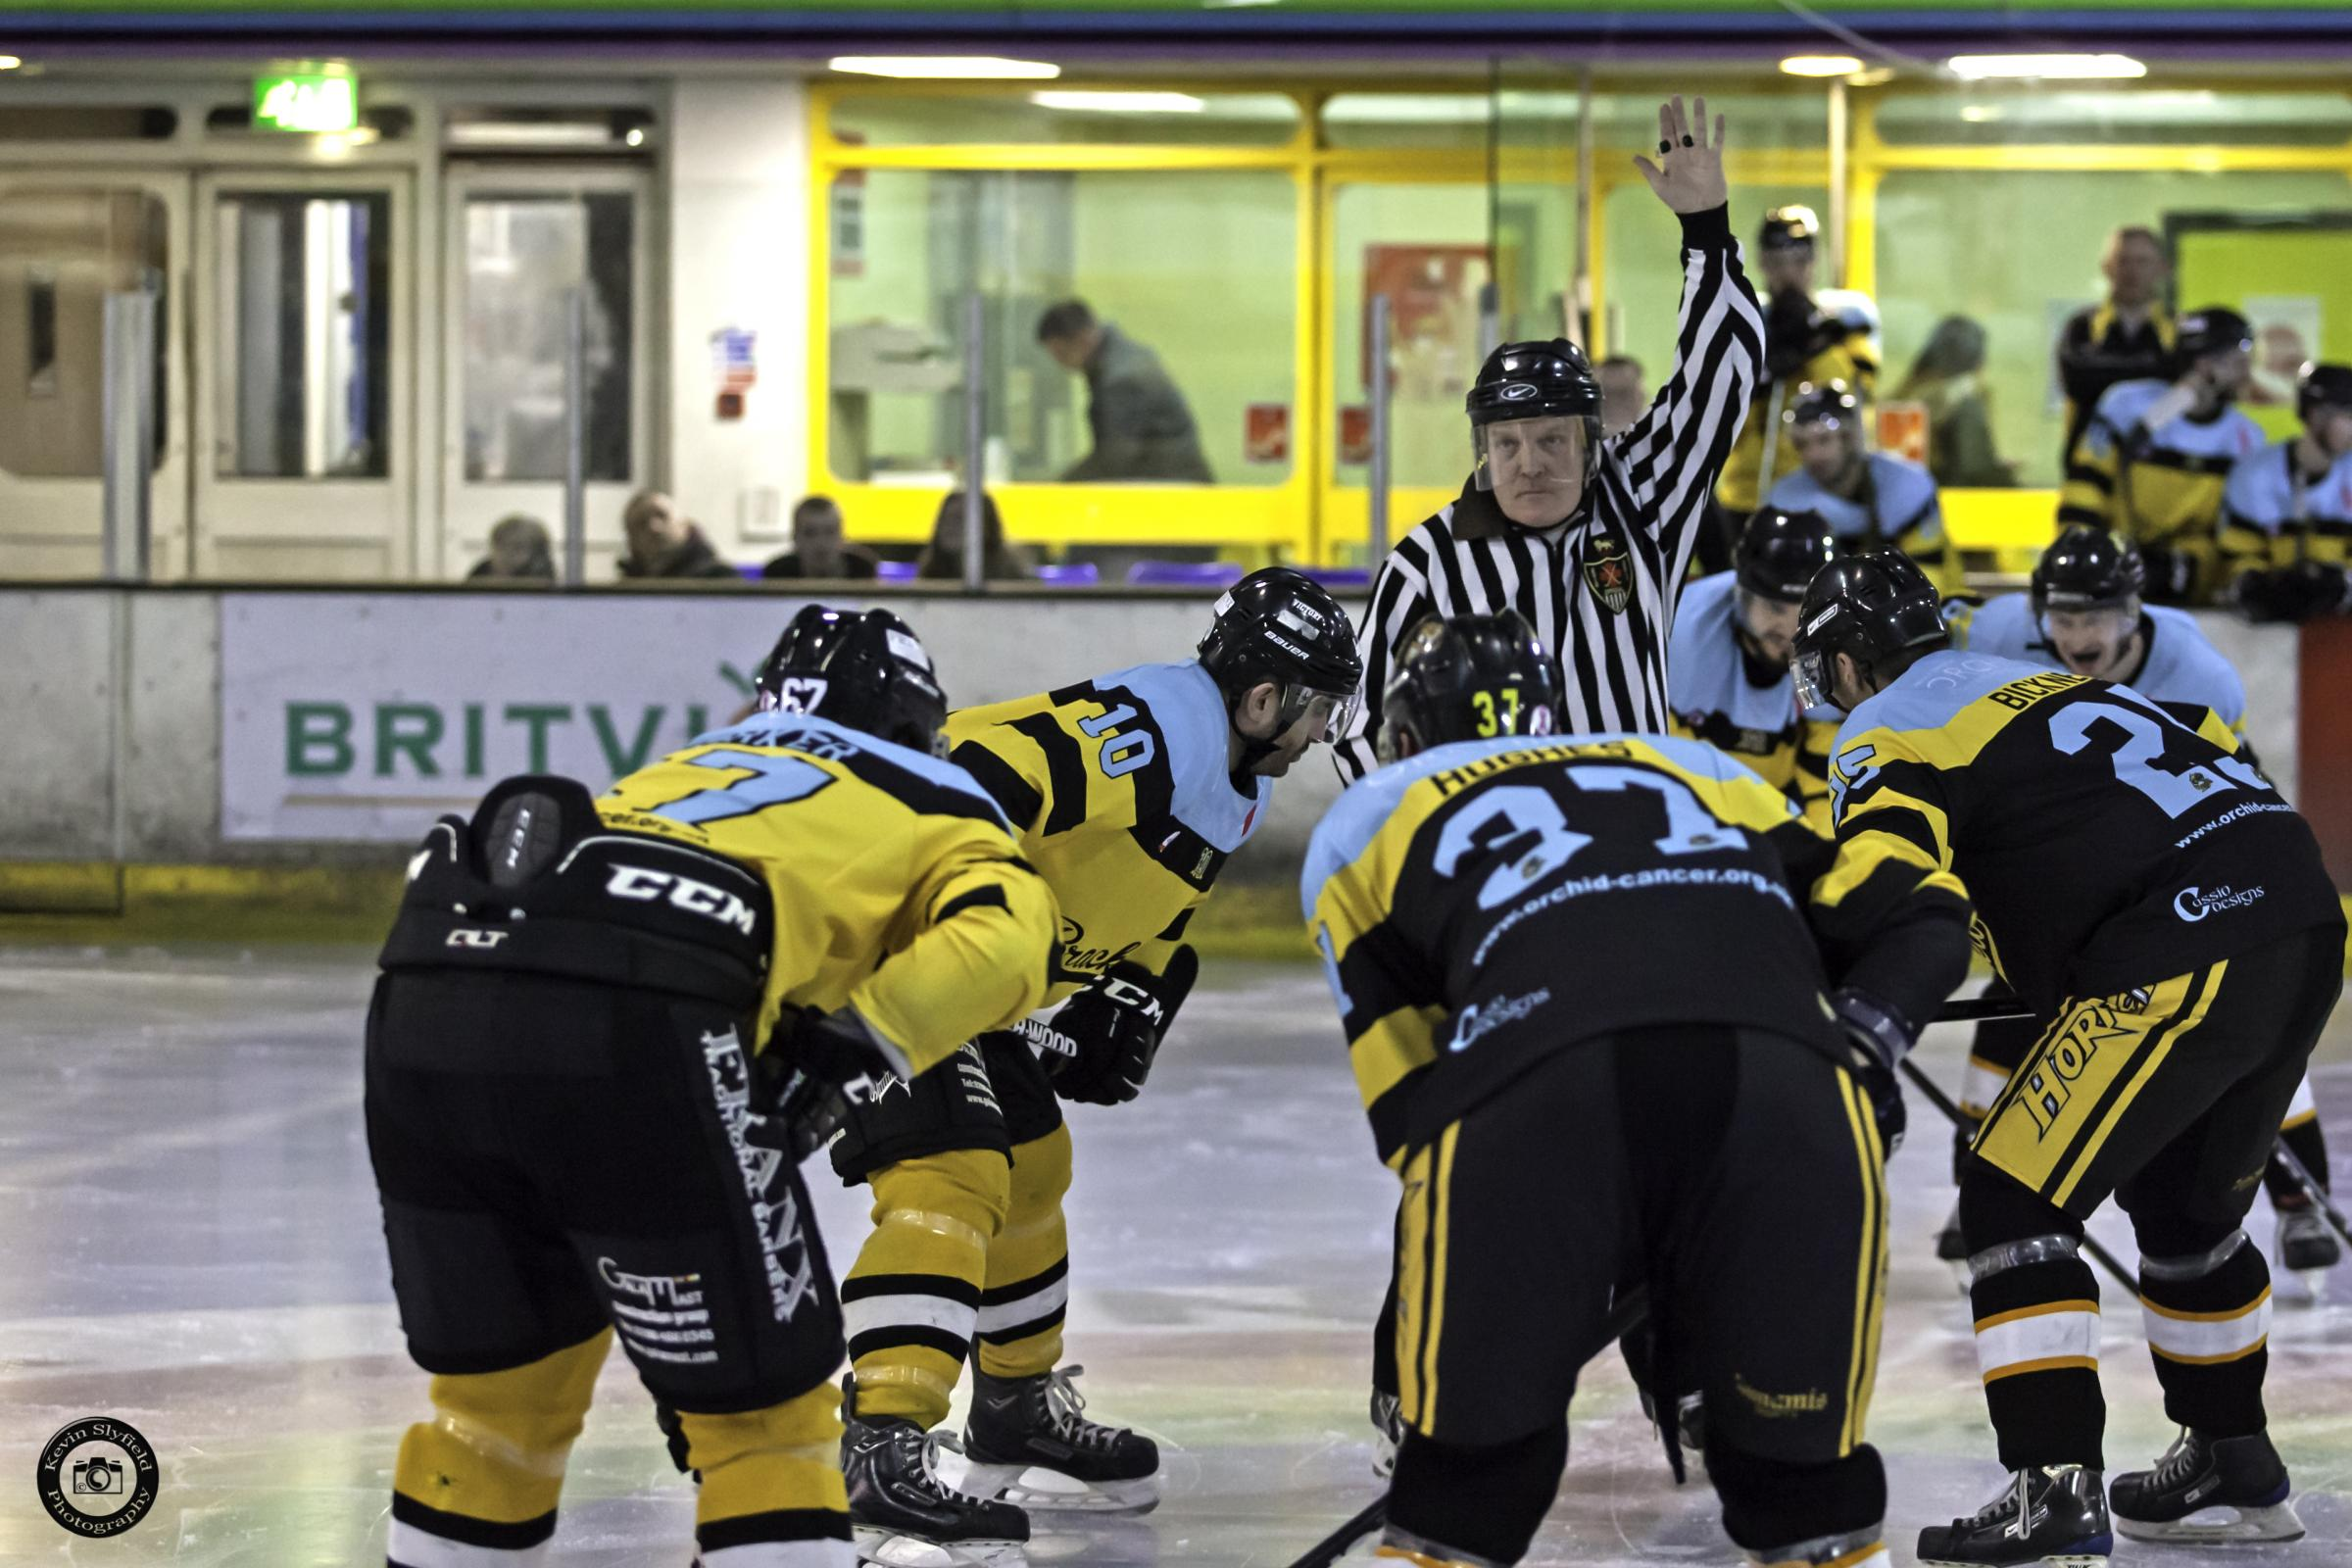 Bracknell Bees raise a cool £900 for cancer charity